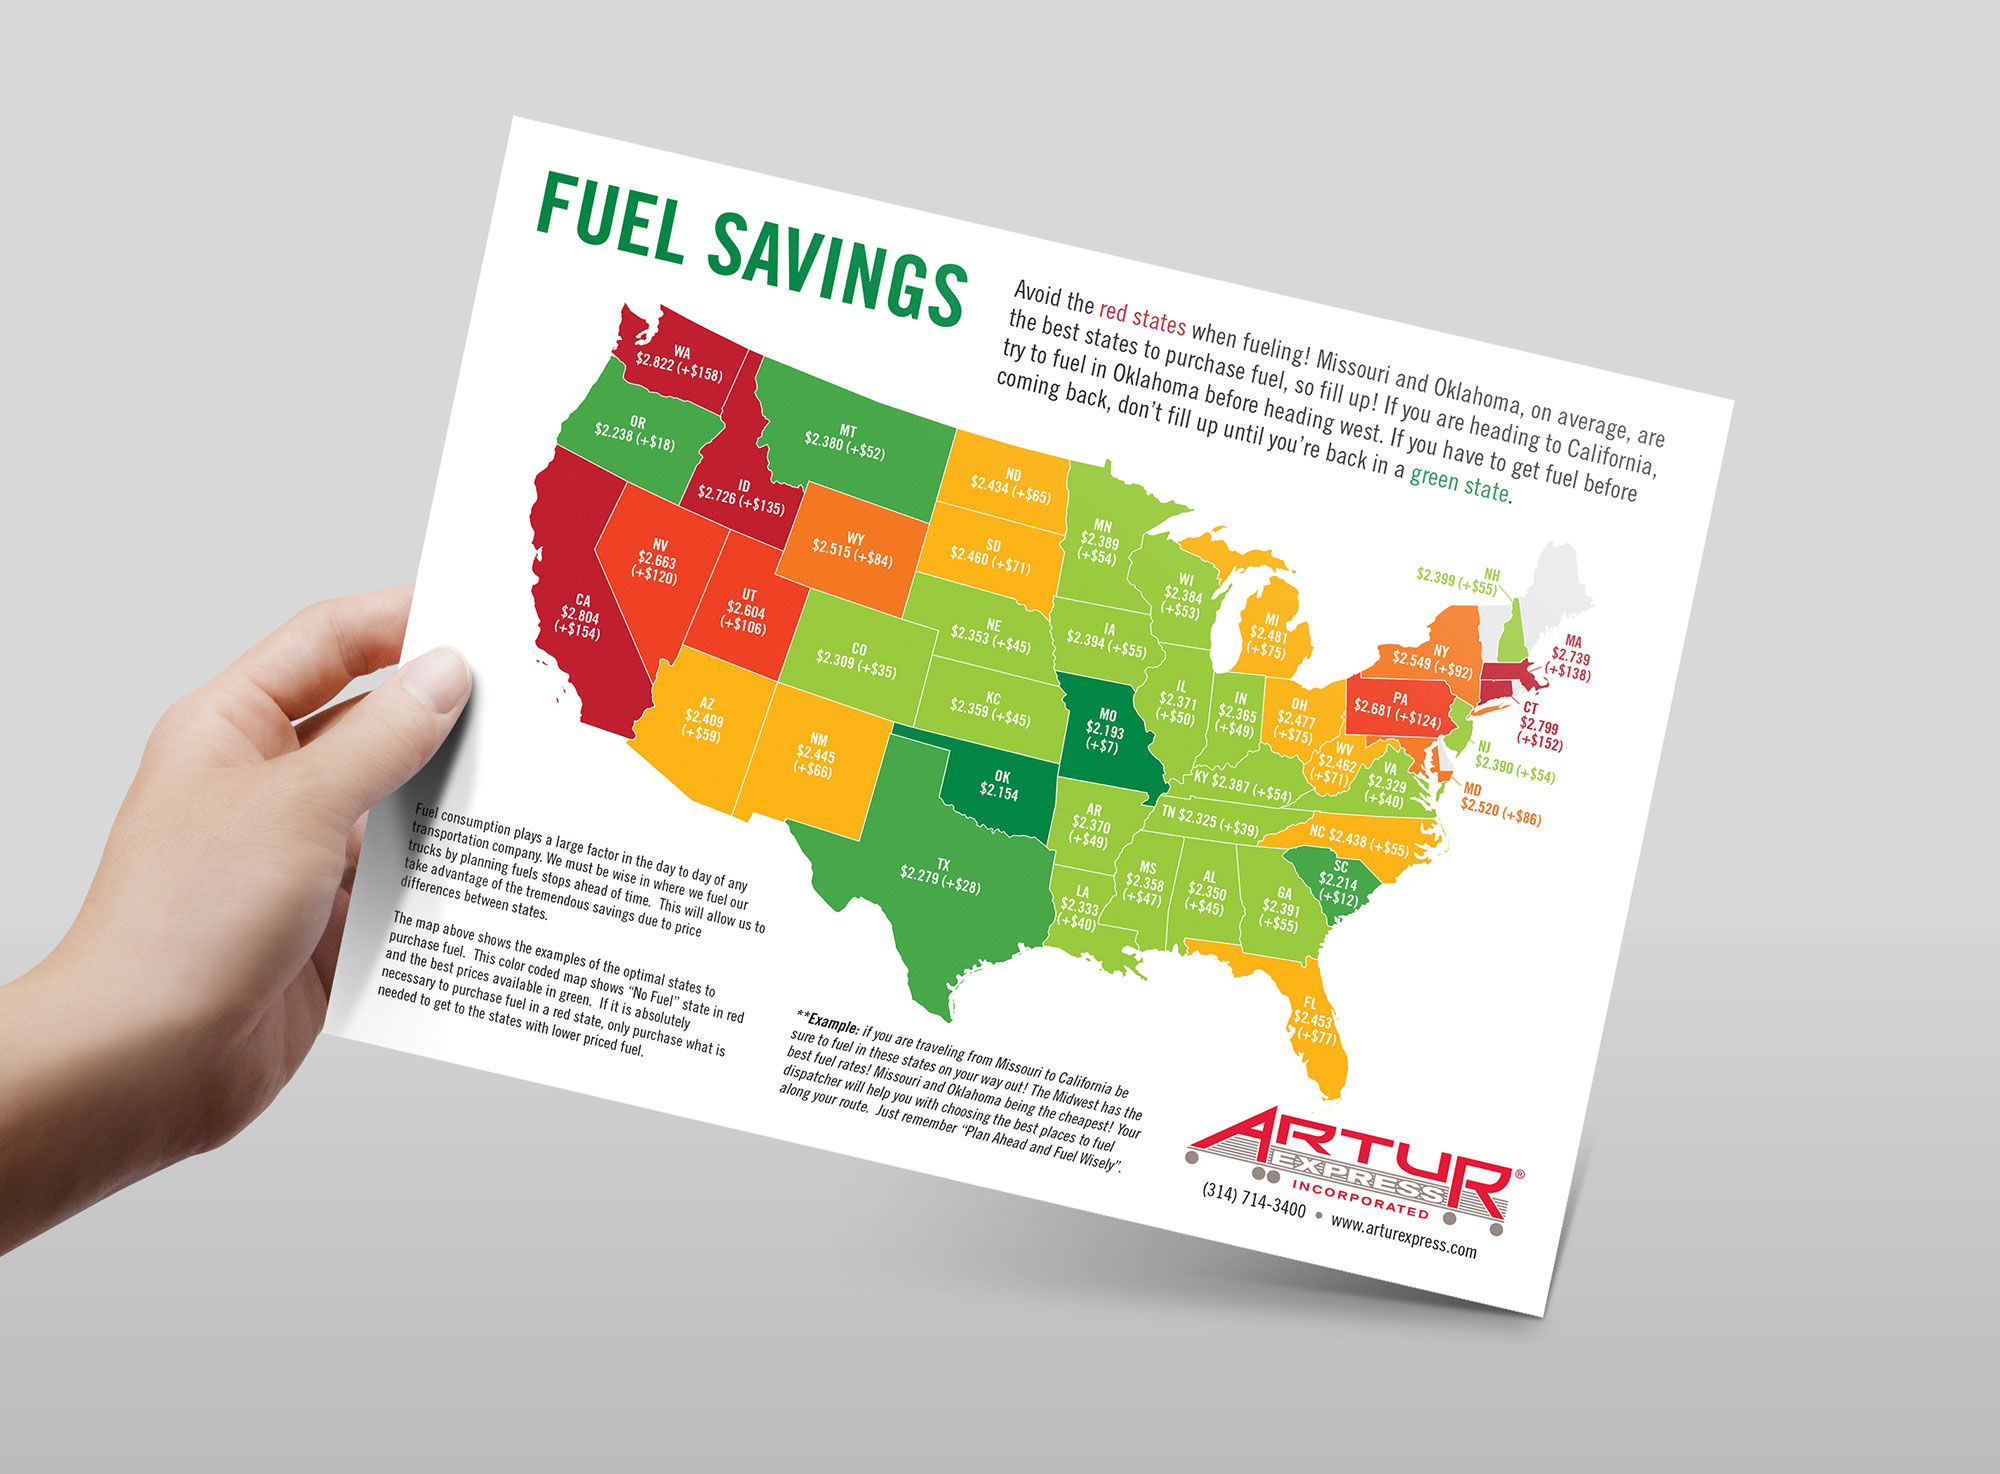 Artur Fuel Savings flyer design